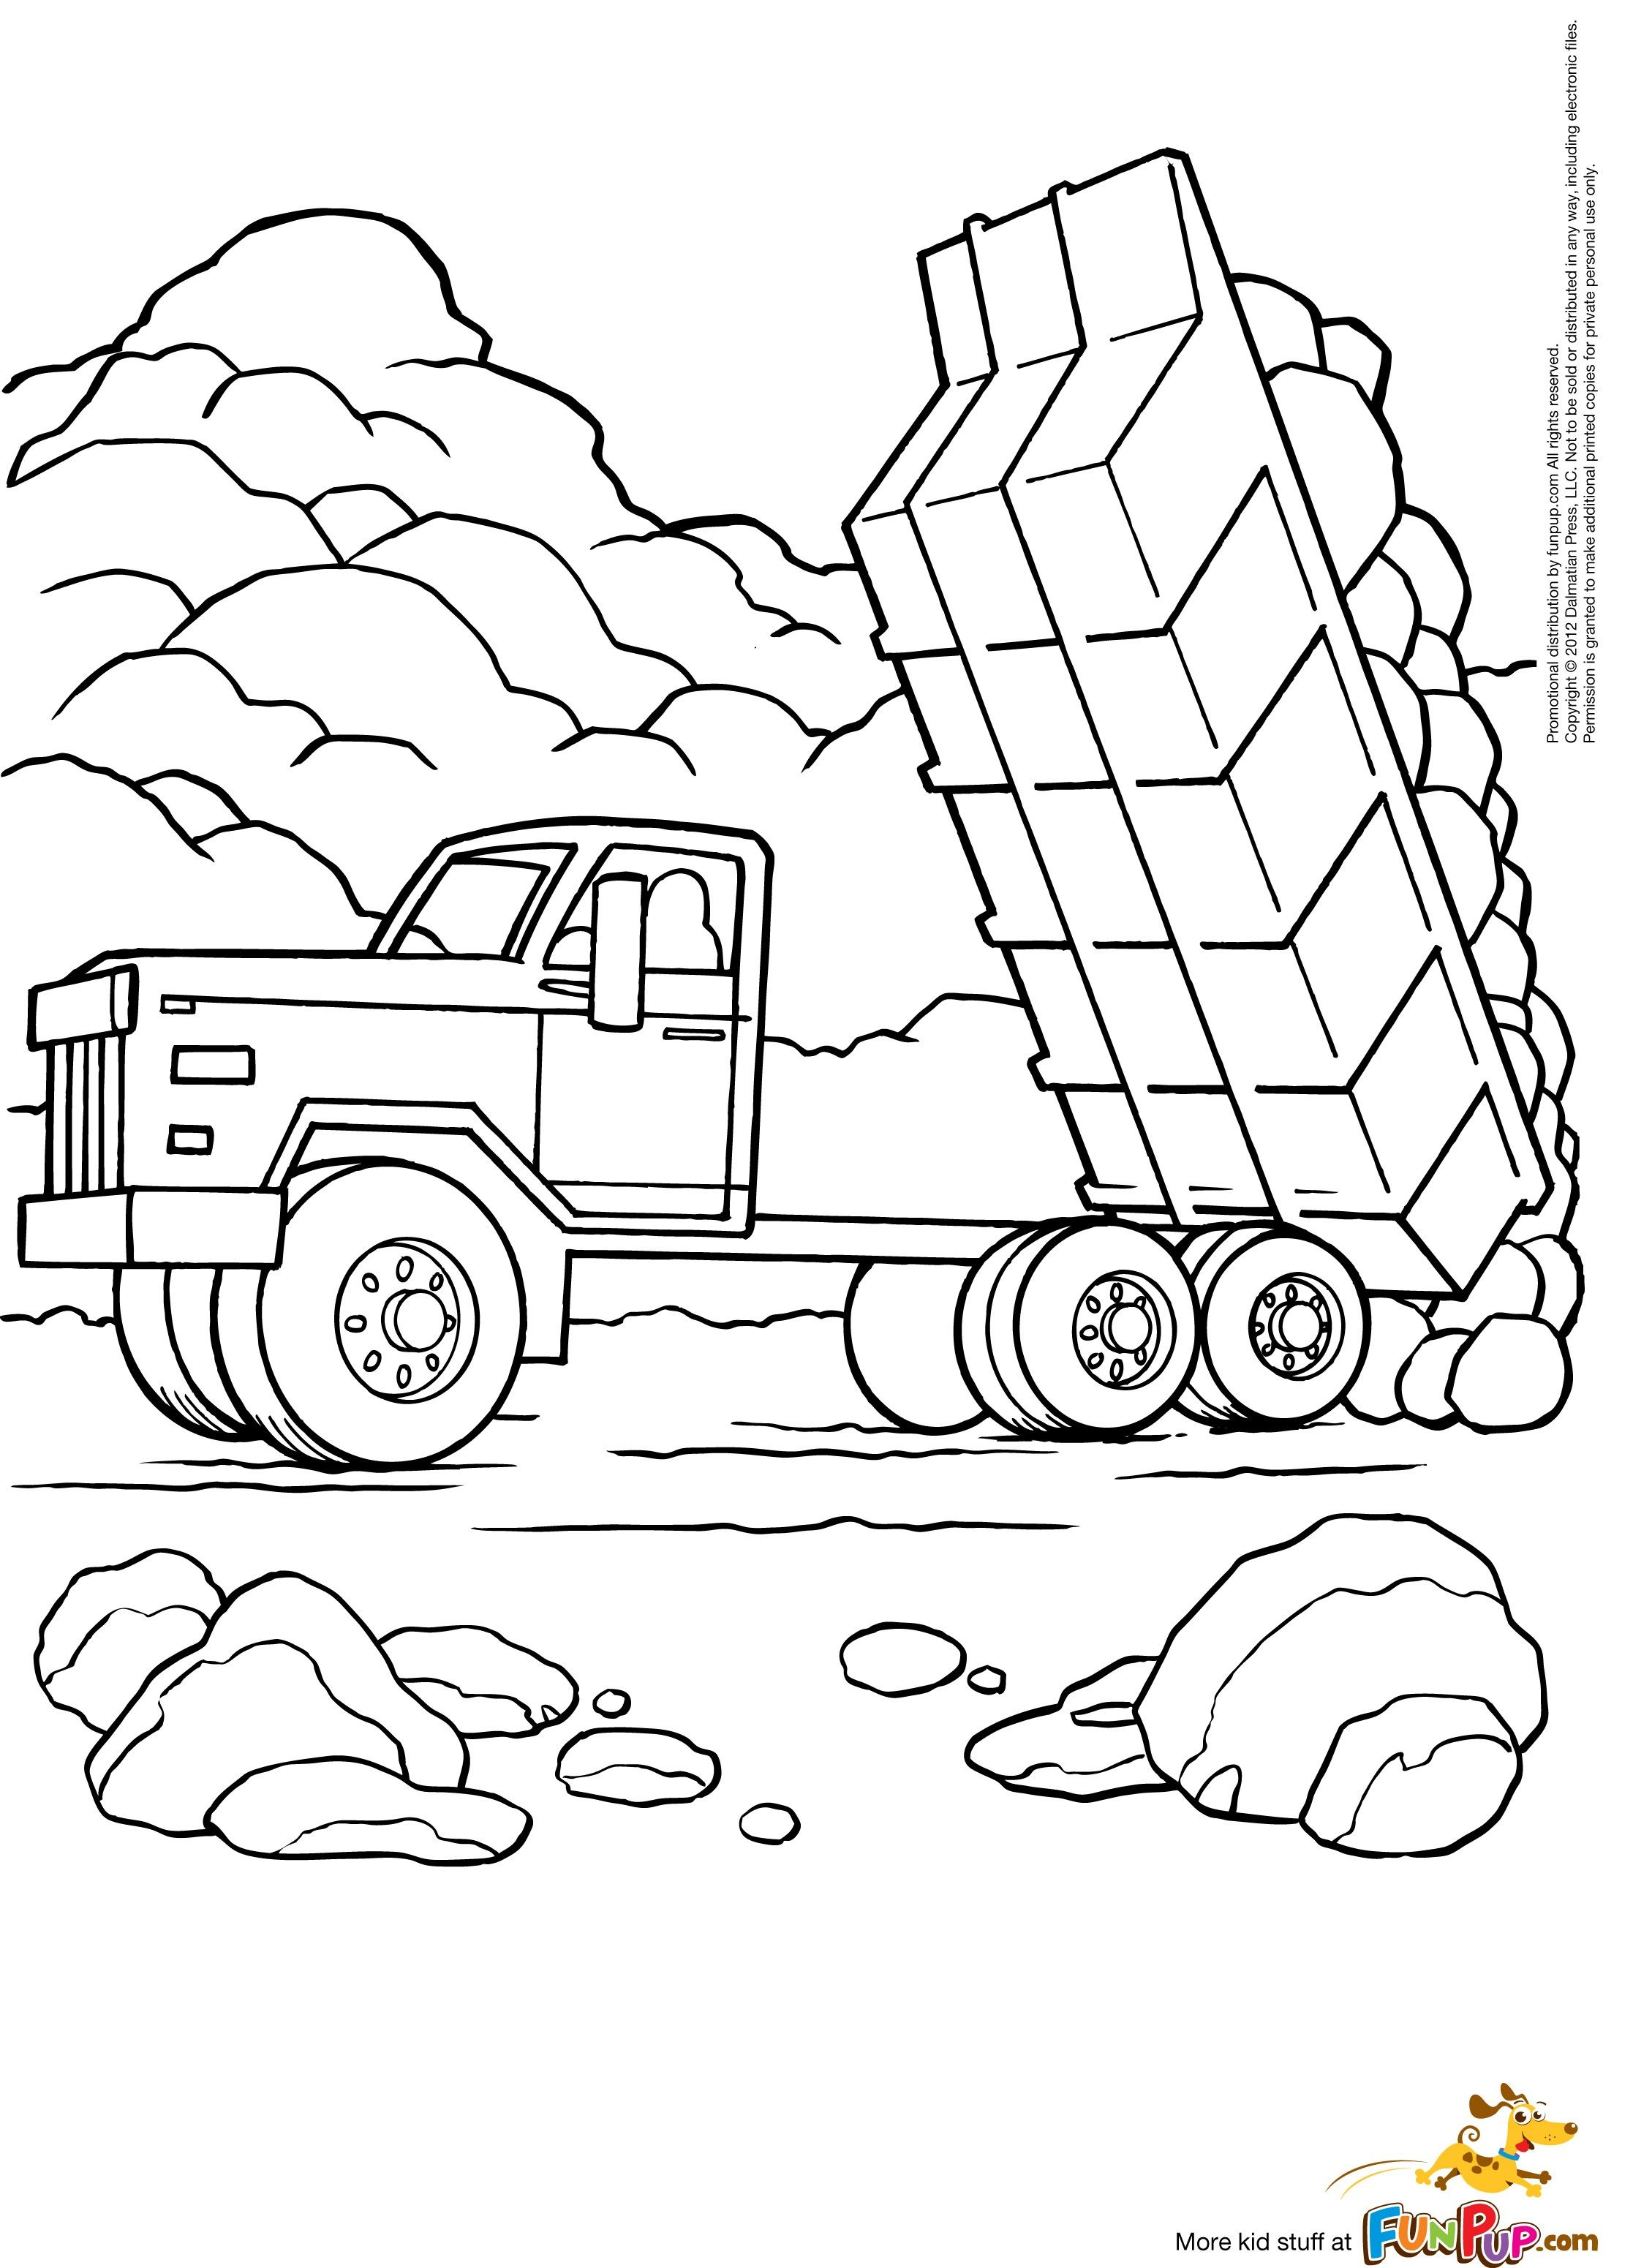 Excavator coloring pages Araba